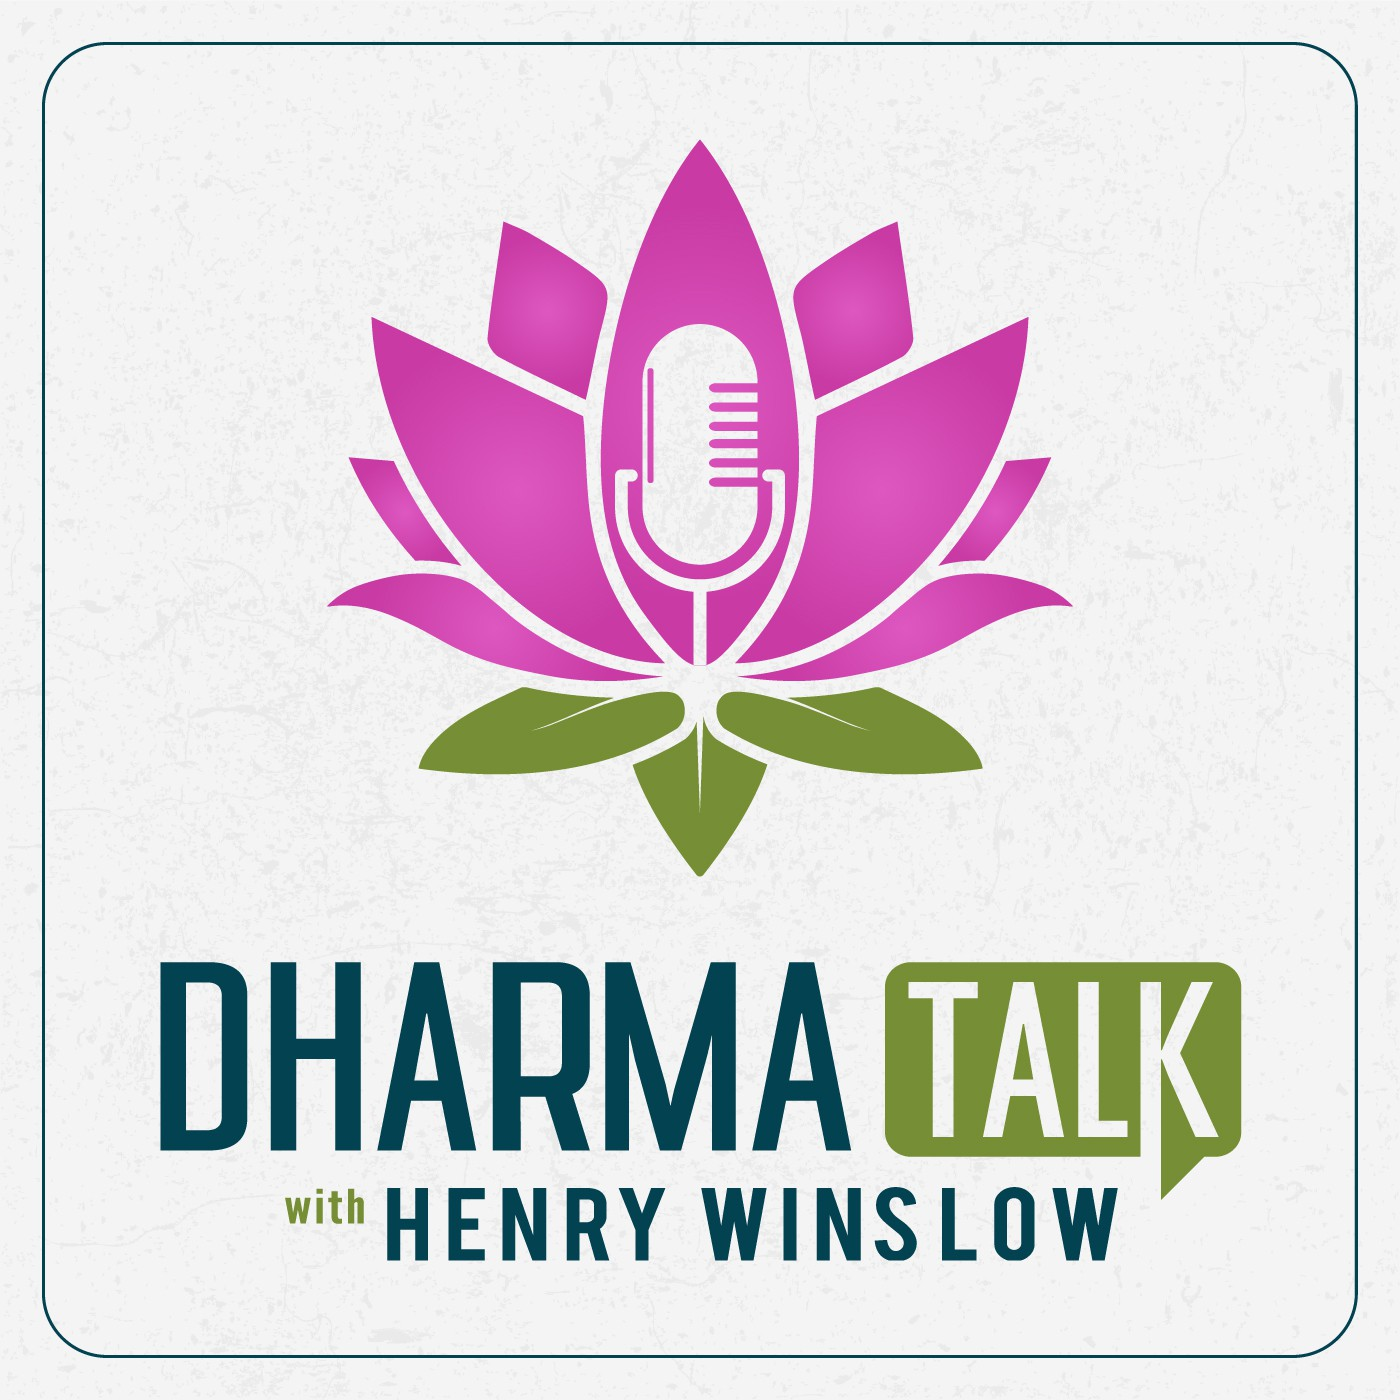 Design an eye-catching logo/cover for a new yoga podcast